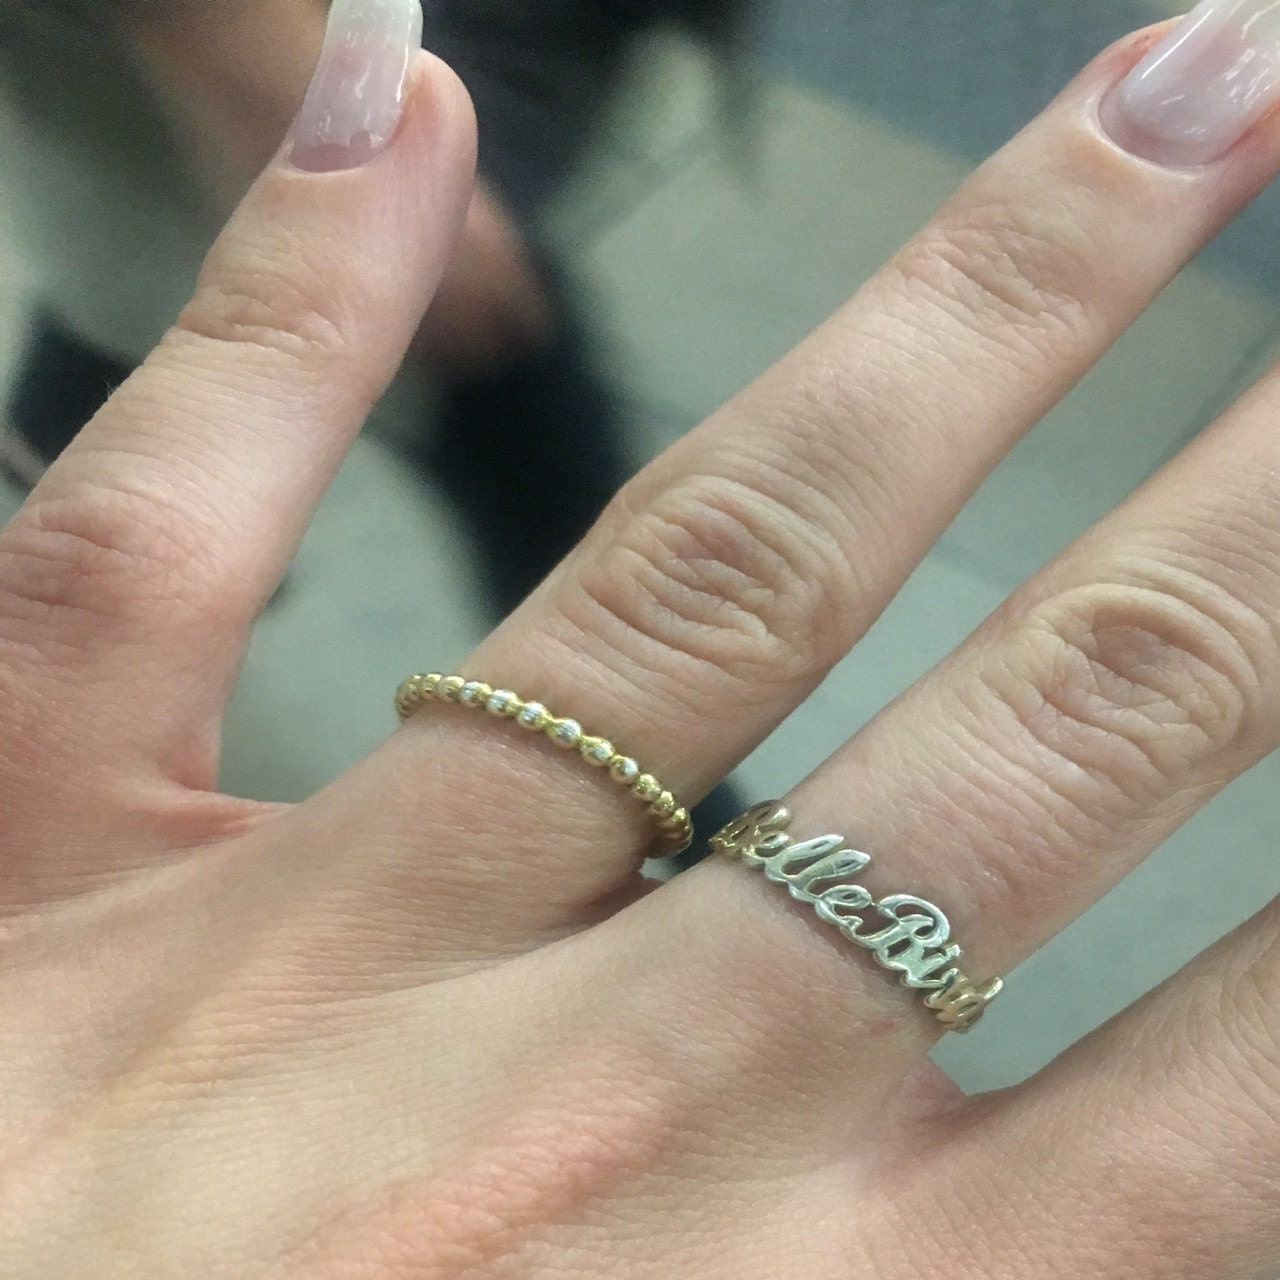 Alice Hooper added a photo of their purchase